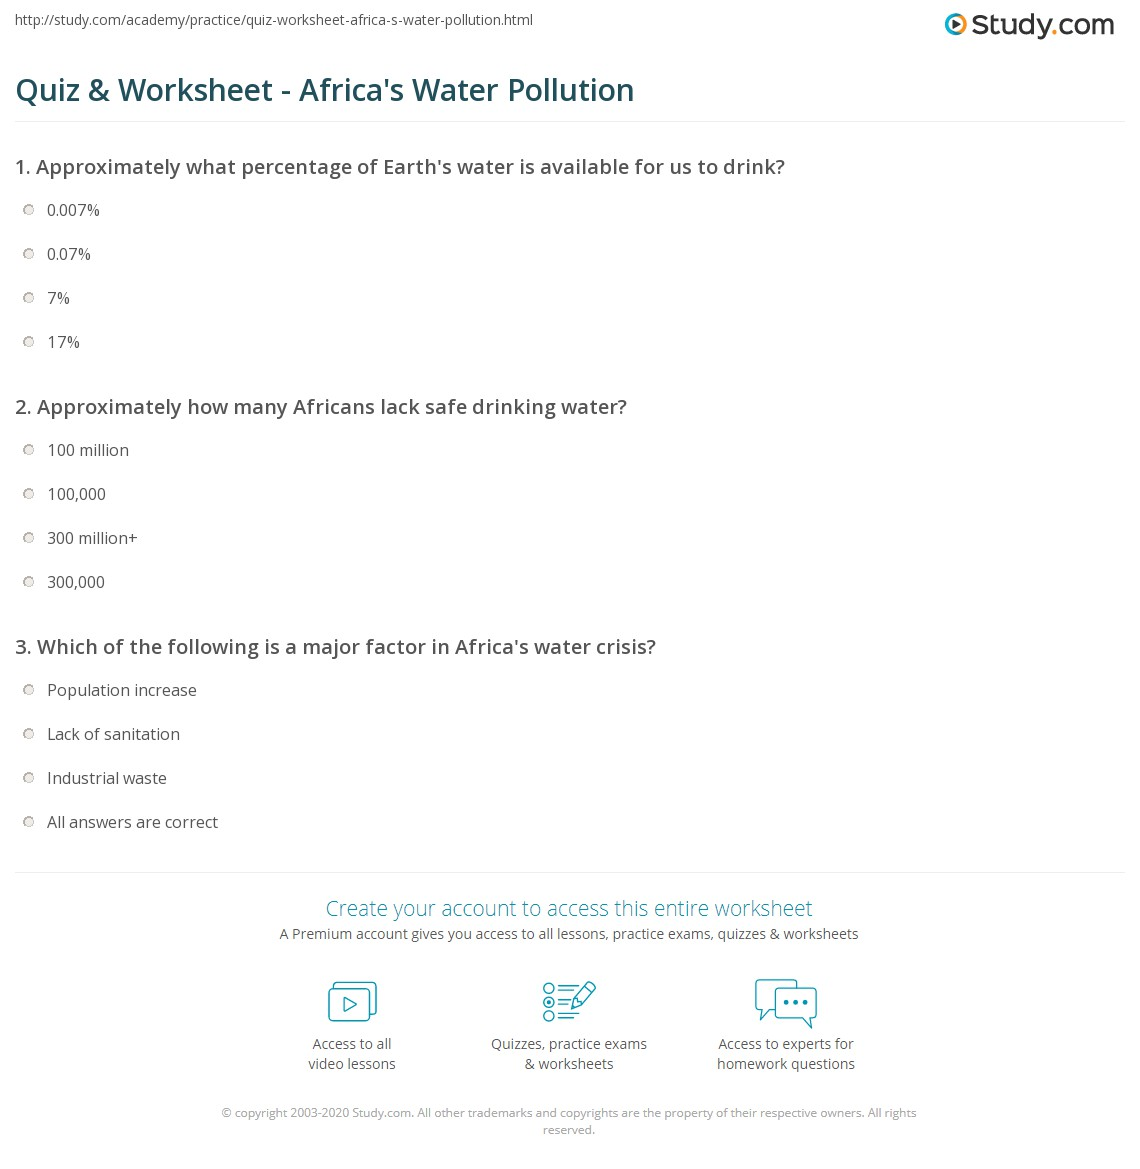 Worksheets Water Pollution Worksheet quiz worksheet africas water pollution study com print in africa causes and effects worksheet